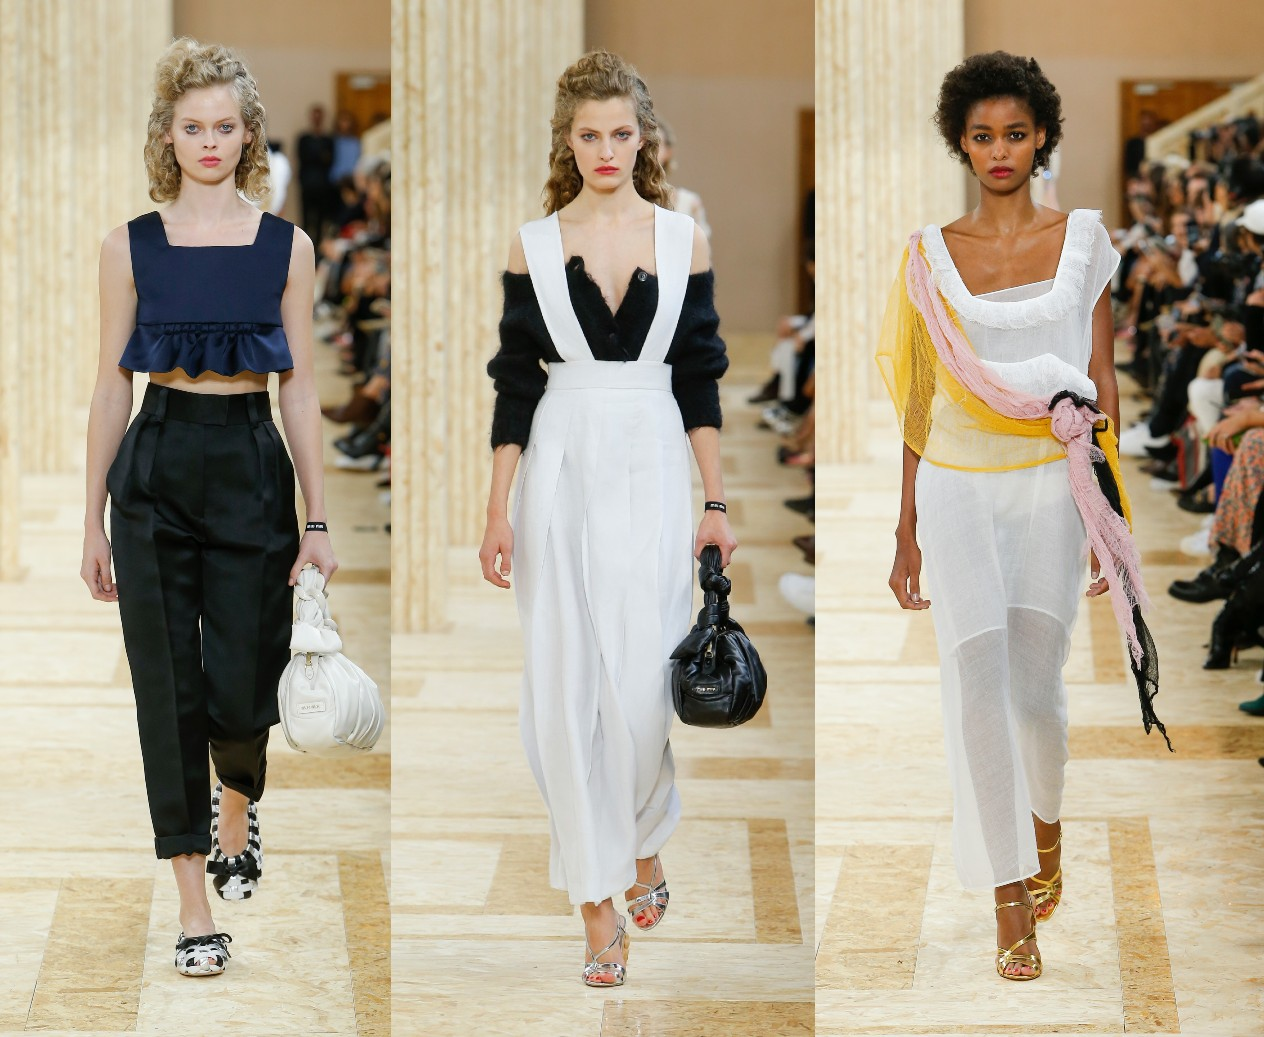 Paris Fashion Week Highlights for Spring 5: From Louis Vuitton